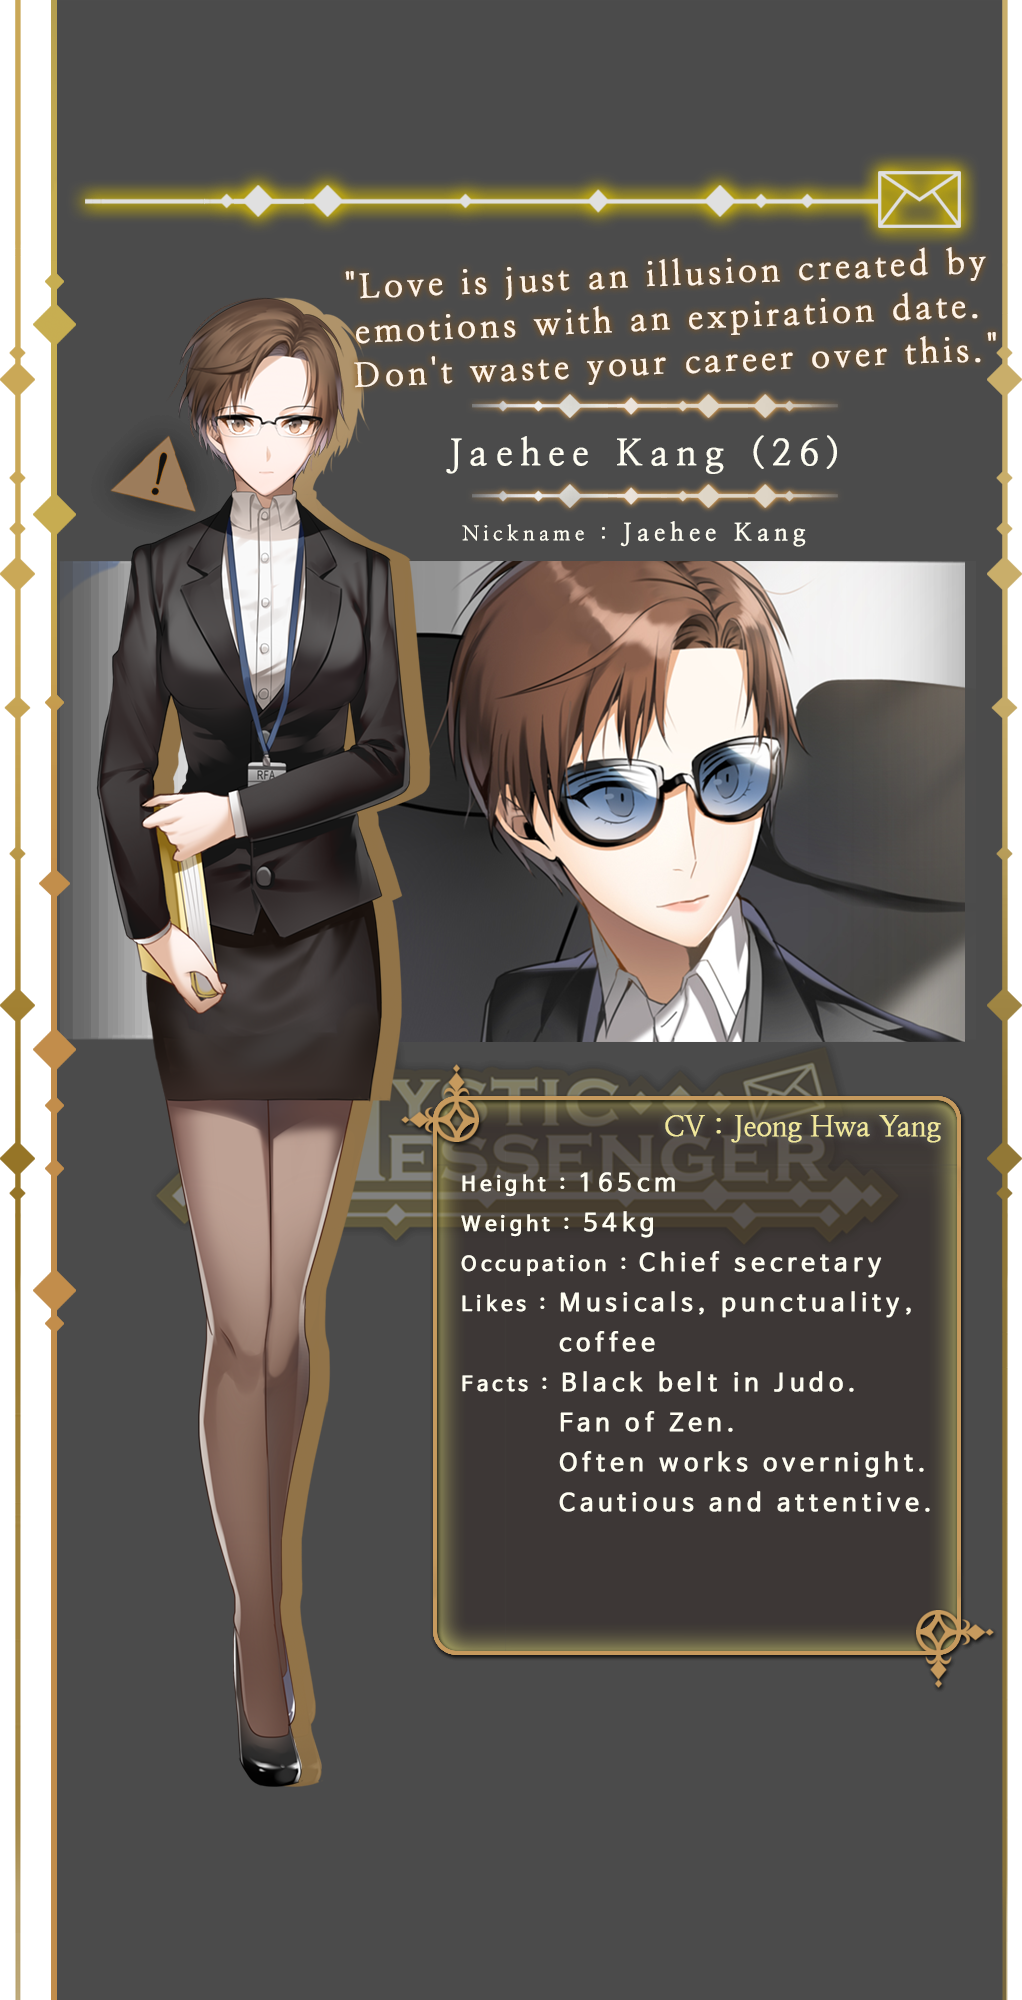 Jaehee Kang Gallery Mystic Messenger Wiki Fandom Powered By Wikia